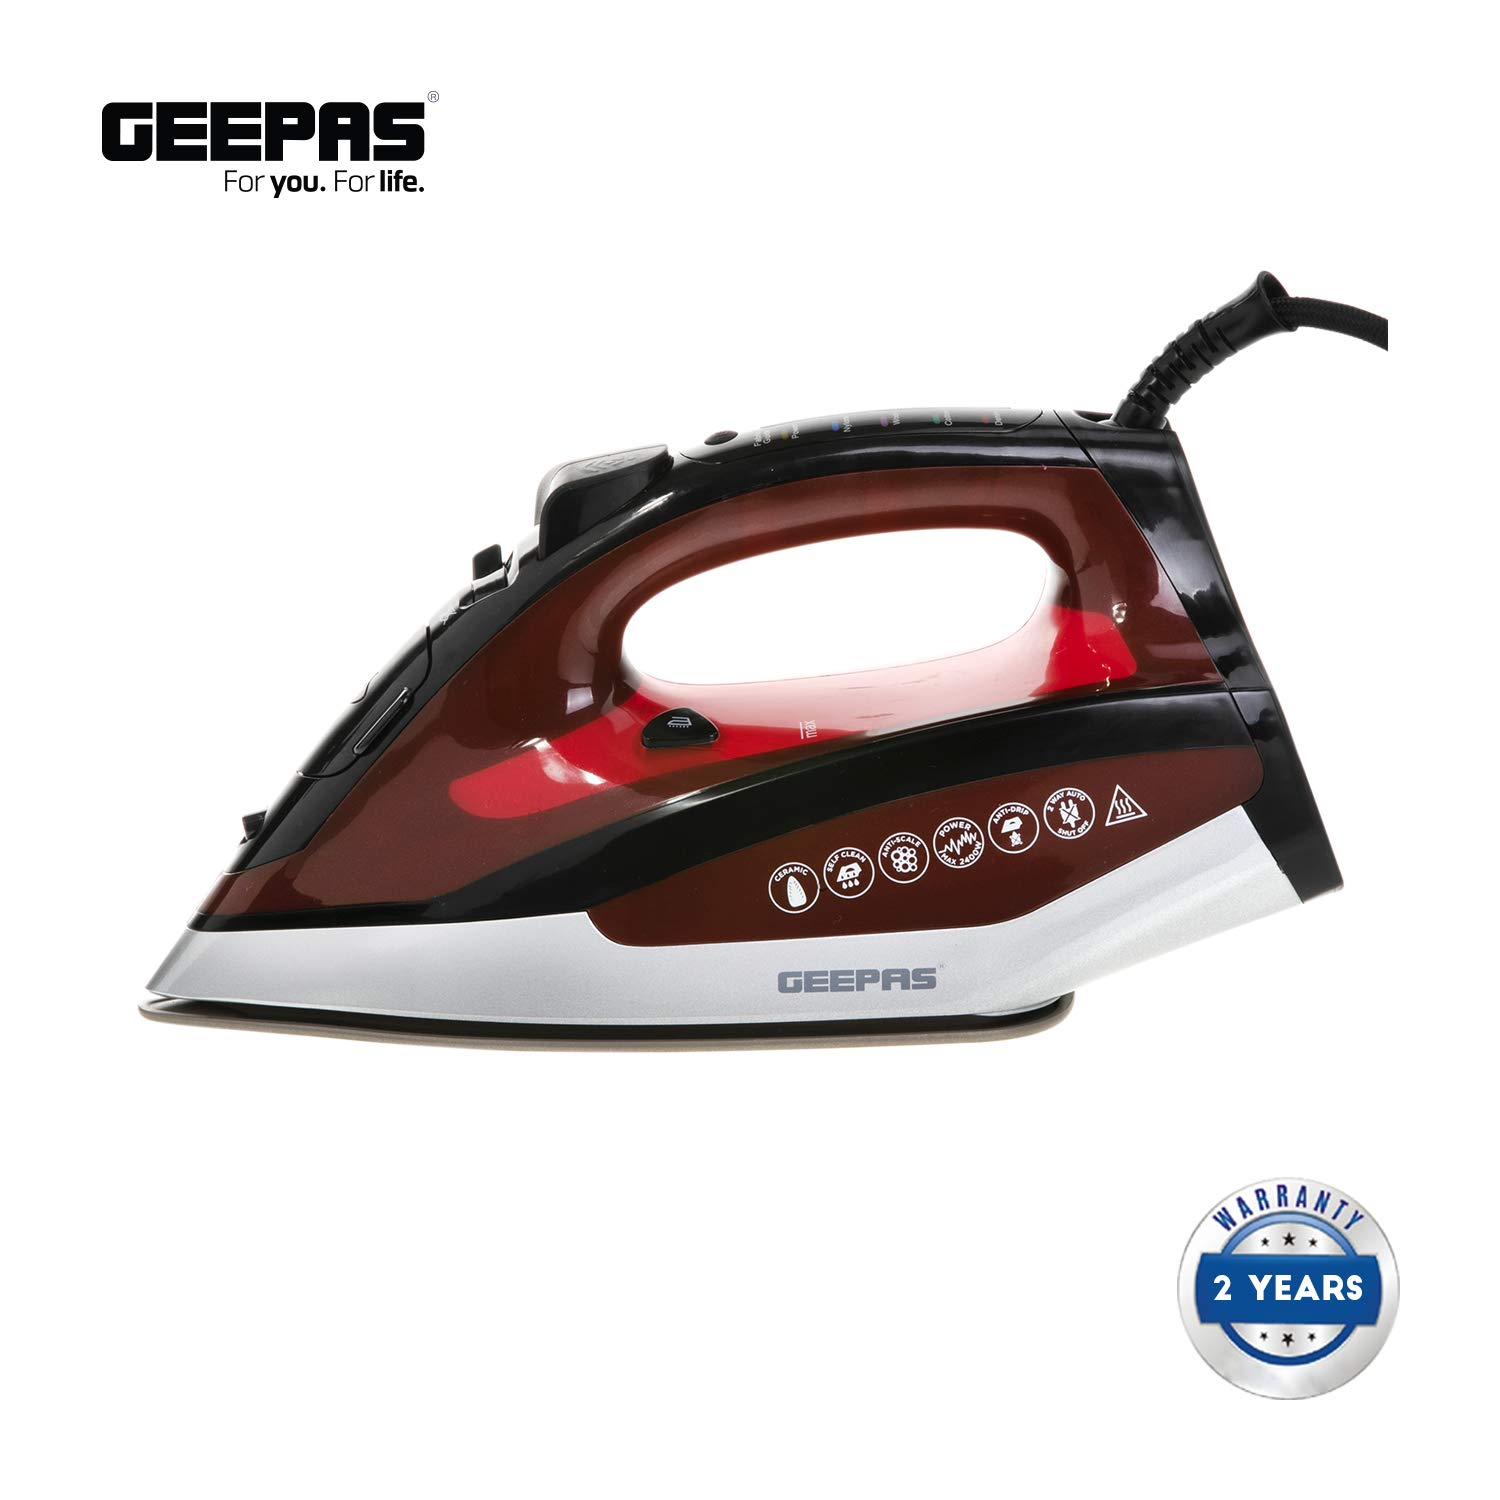 Geepas Digital Steam Iron for Crisp Ironed Clothes – Ceramic Soleplate, Digital Temperature Adjustment, Automatic Shut-Off and Self Clean Function